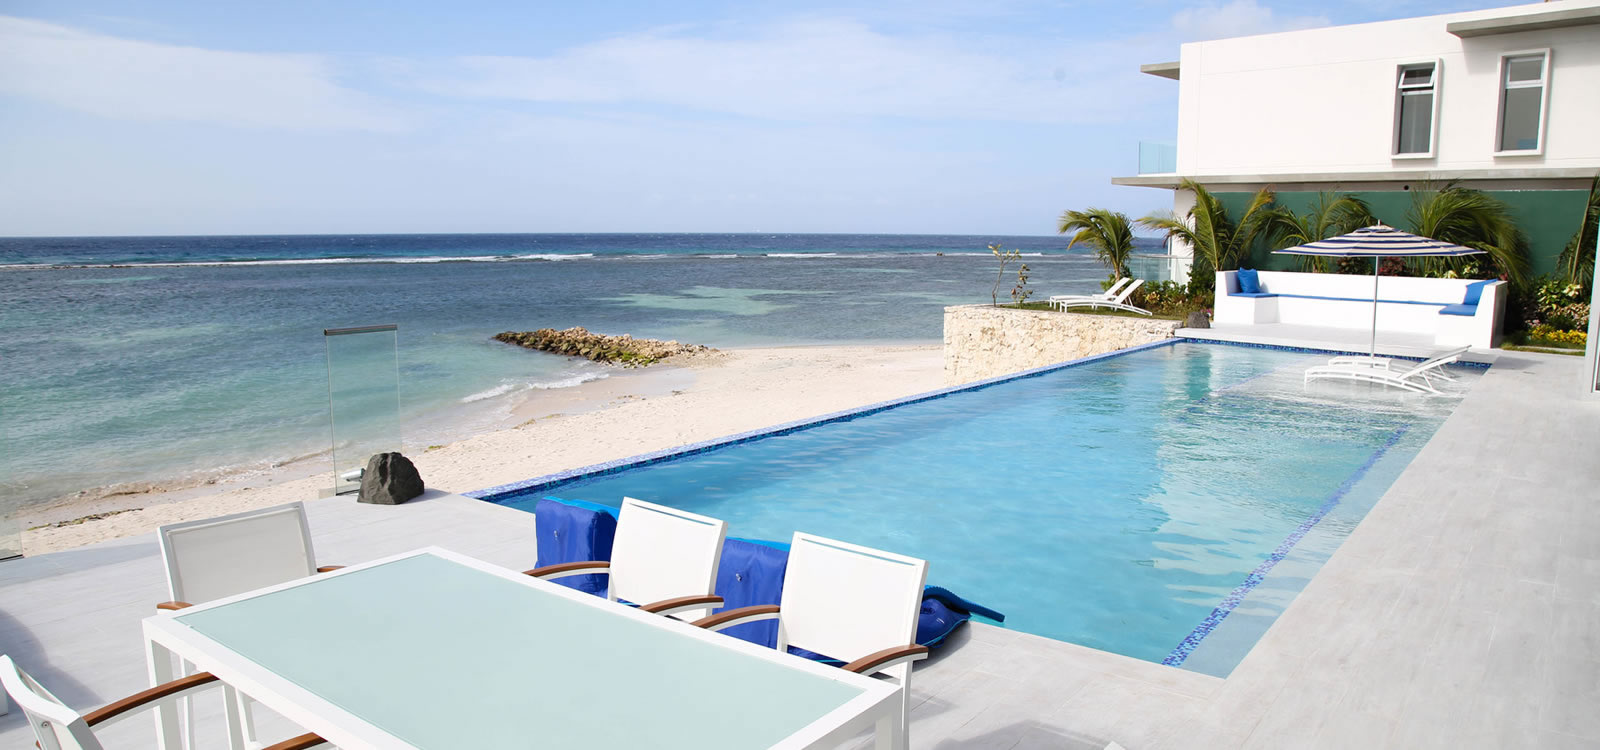 Lovely 6 Bedroom Luxury Beachfront Home For Sale, Savaneta, Aruba